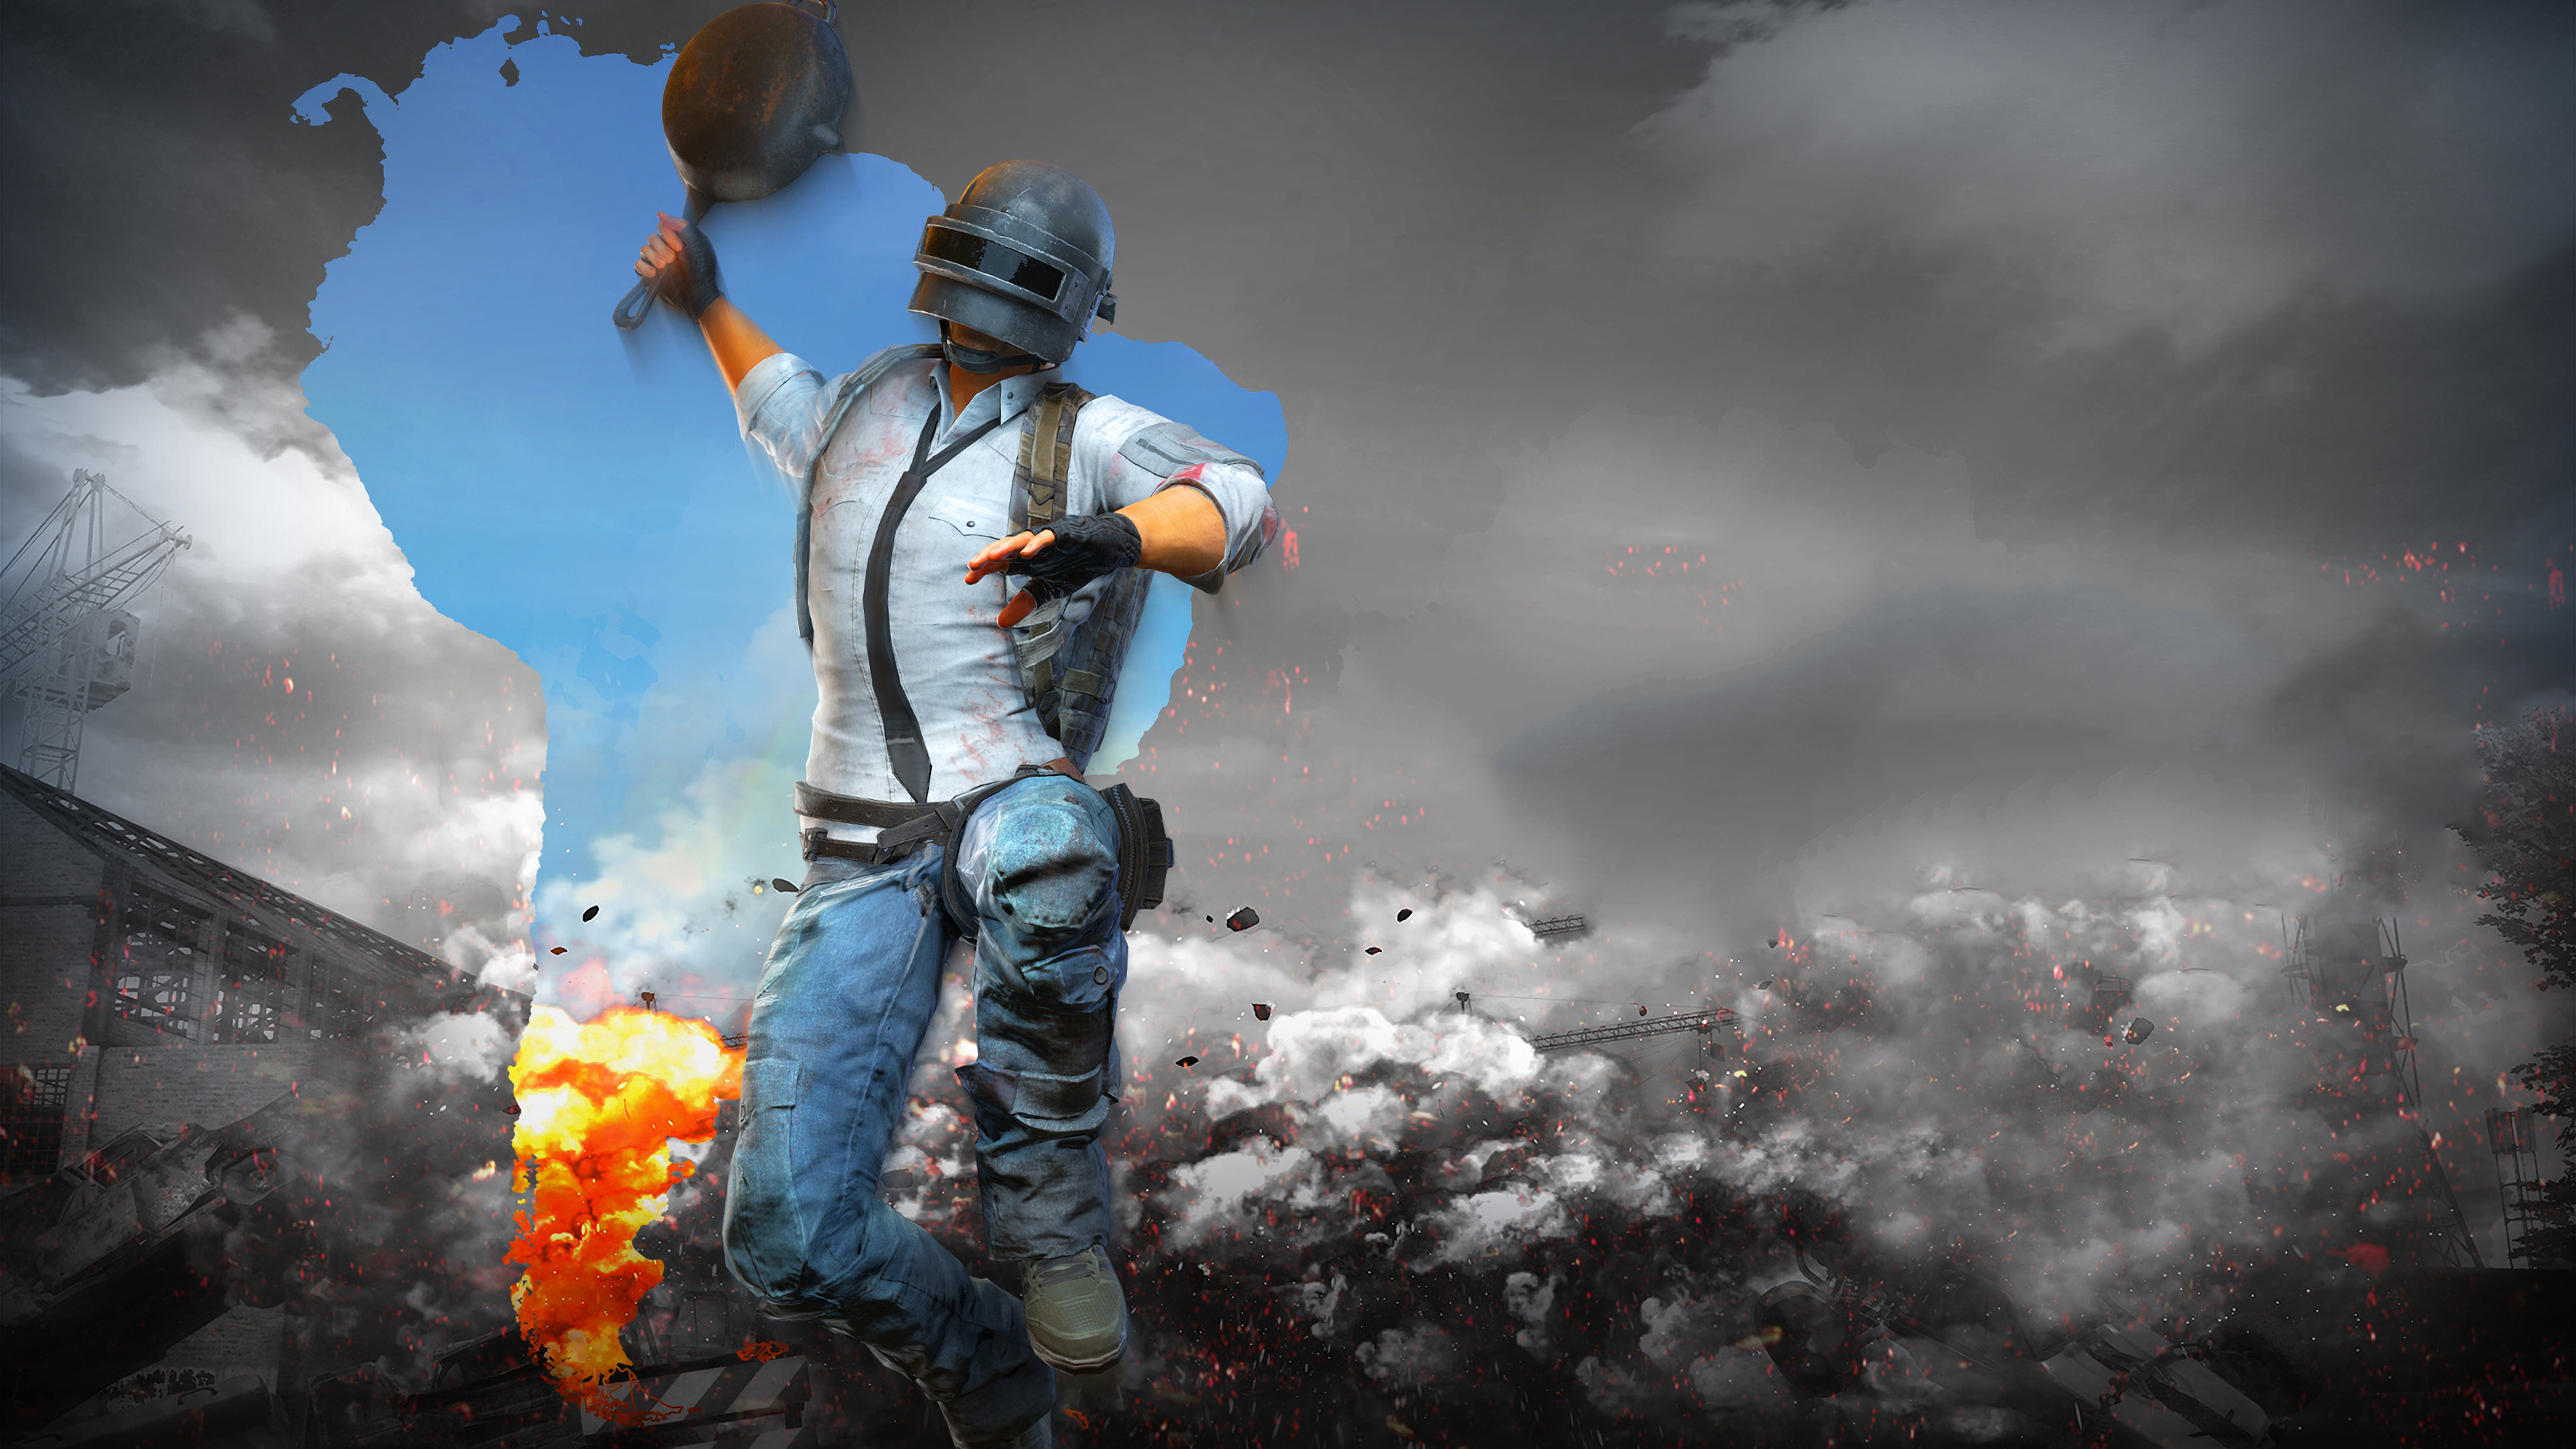 Pubg Wallpapers Ipad: PUBG Helmet Man With Pan 4k Pubg Wallpapers